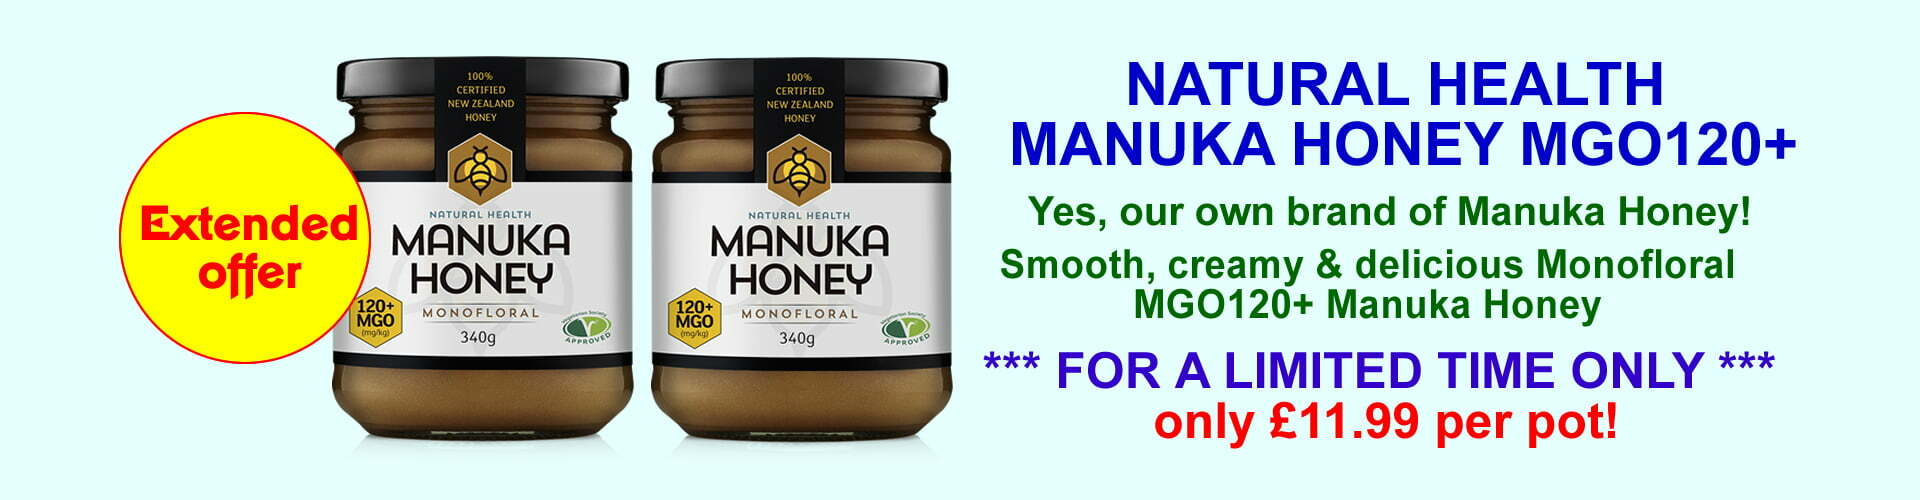 Now extended for a limited time only - £11.99 per pot for Natural Health Manuka Honey MGO120+ 340g